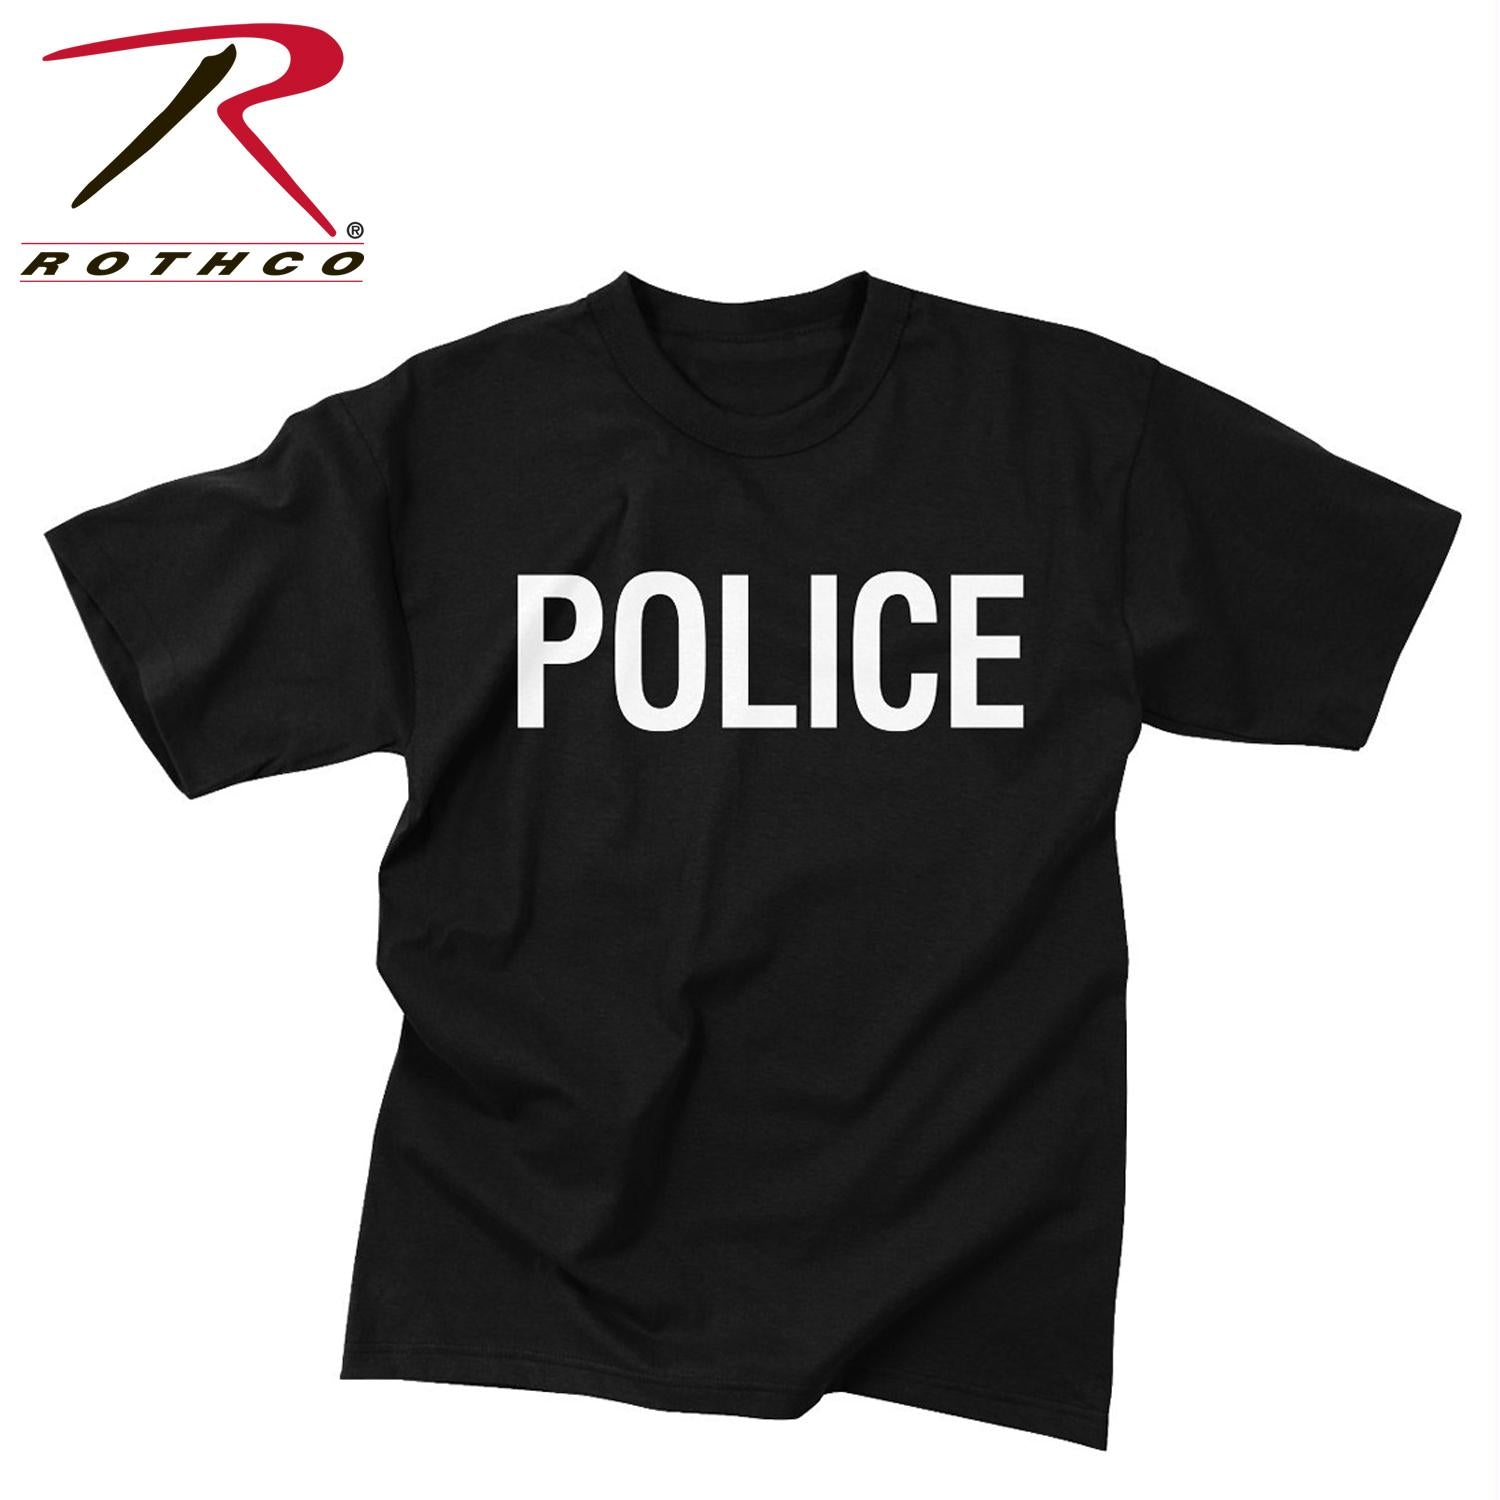 Rothco 2-Sided Police T-Shirt - S